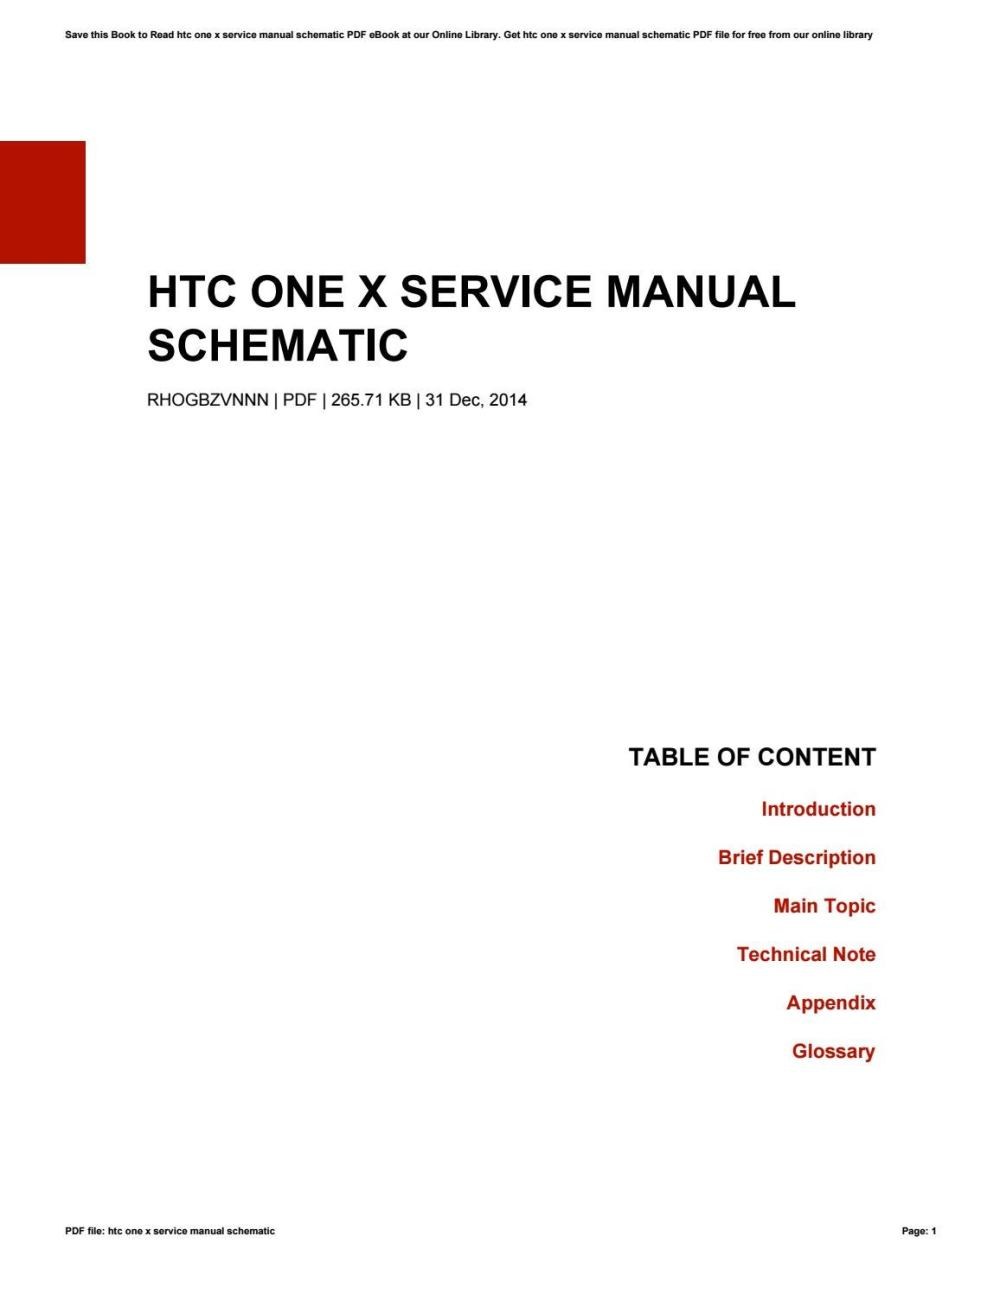 medium resolution of htc one x service manual schematic by uacro18 issuu